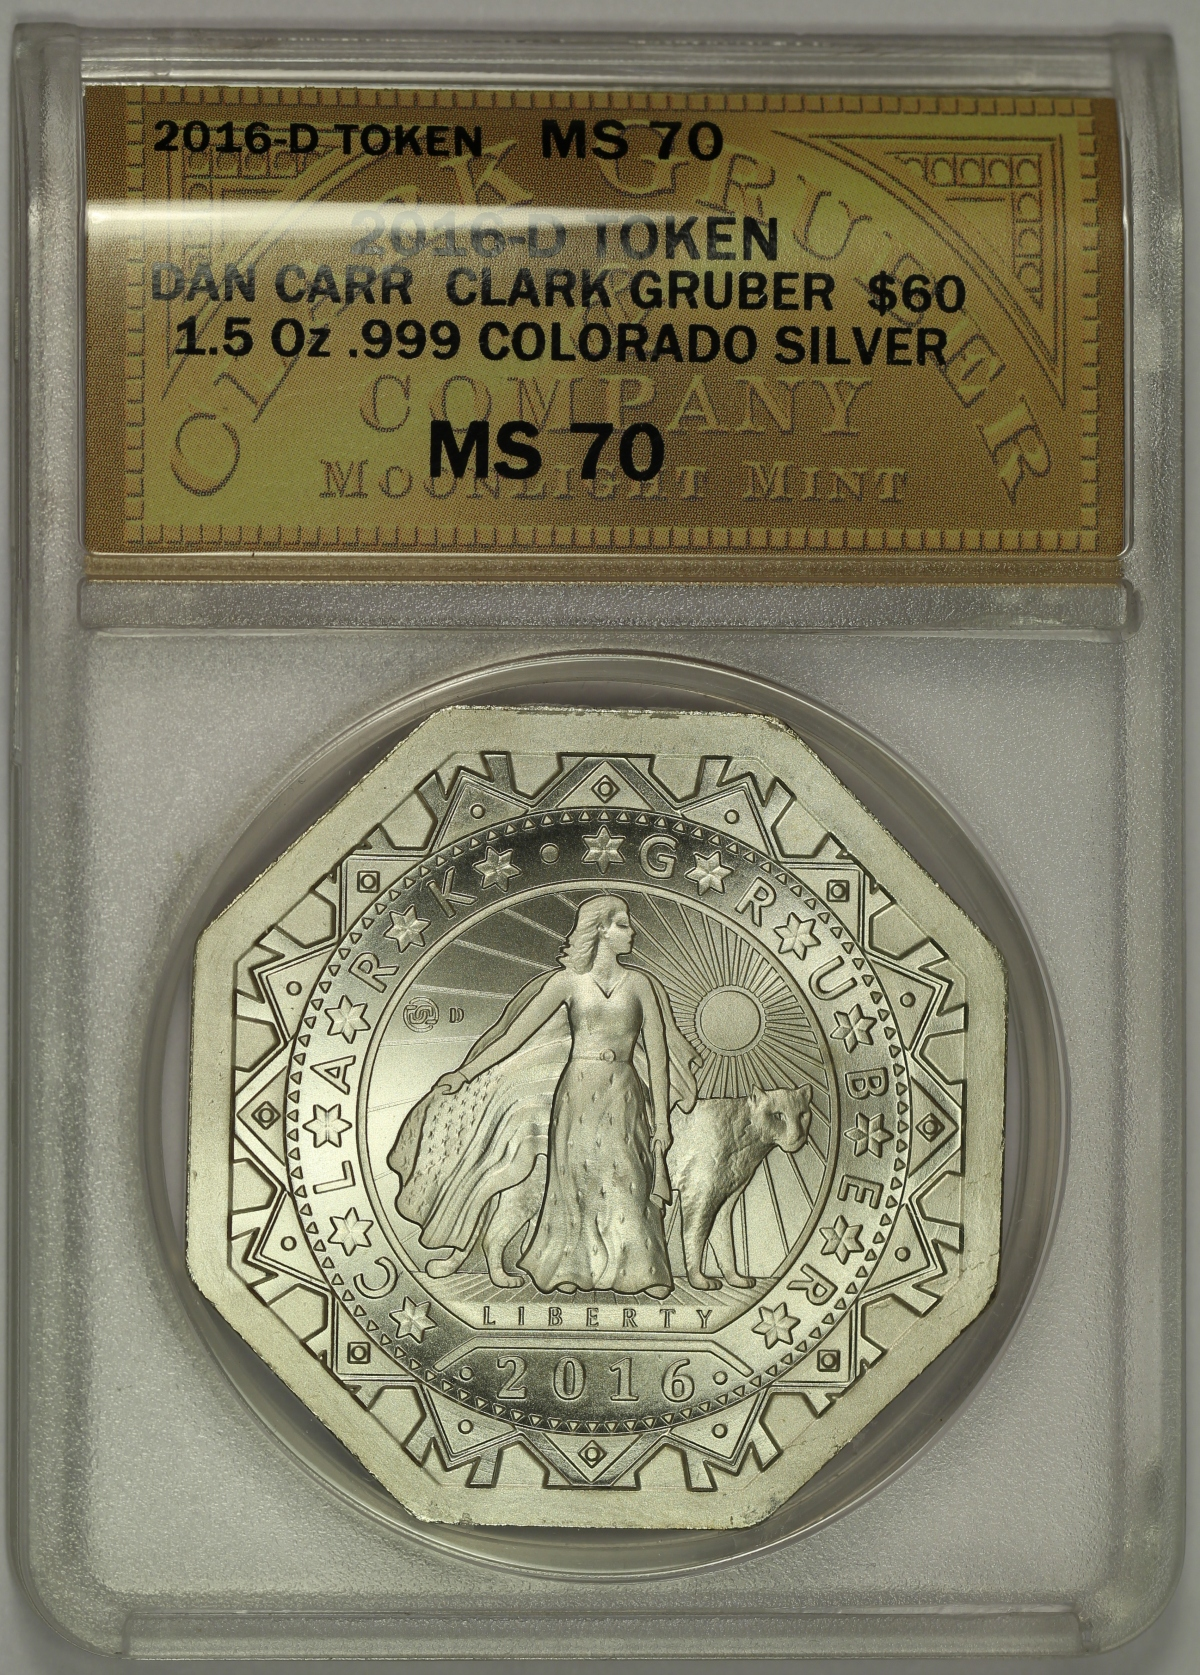 Holder Obverse Image